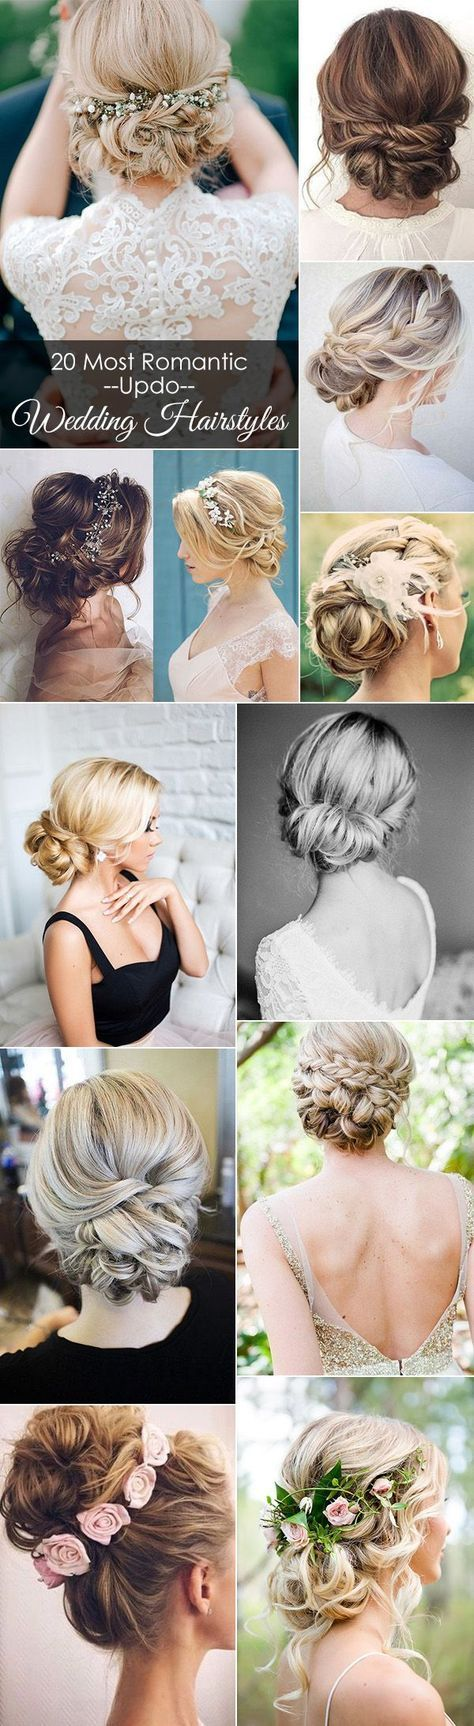 most romantic updo wedding hairstyles wedding hairstyles